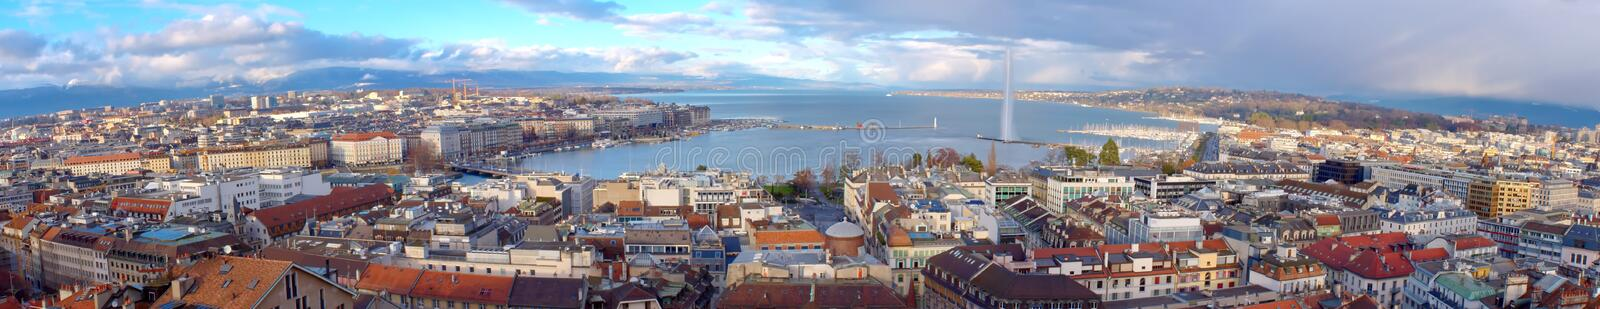 Panorama de ville de Genève, Suisse (HDR) photo stock